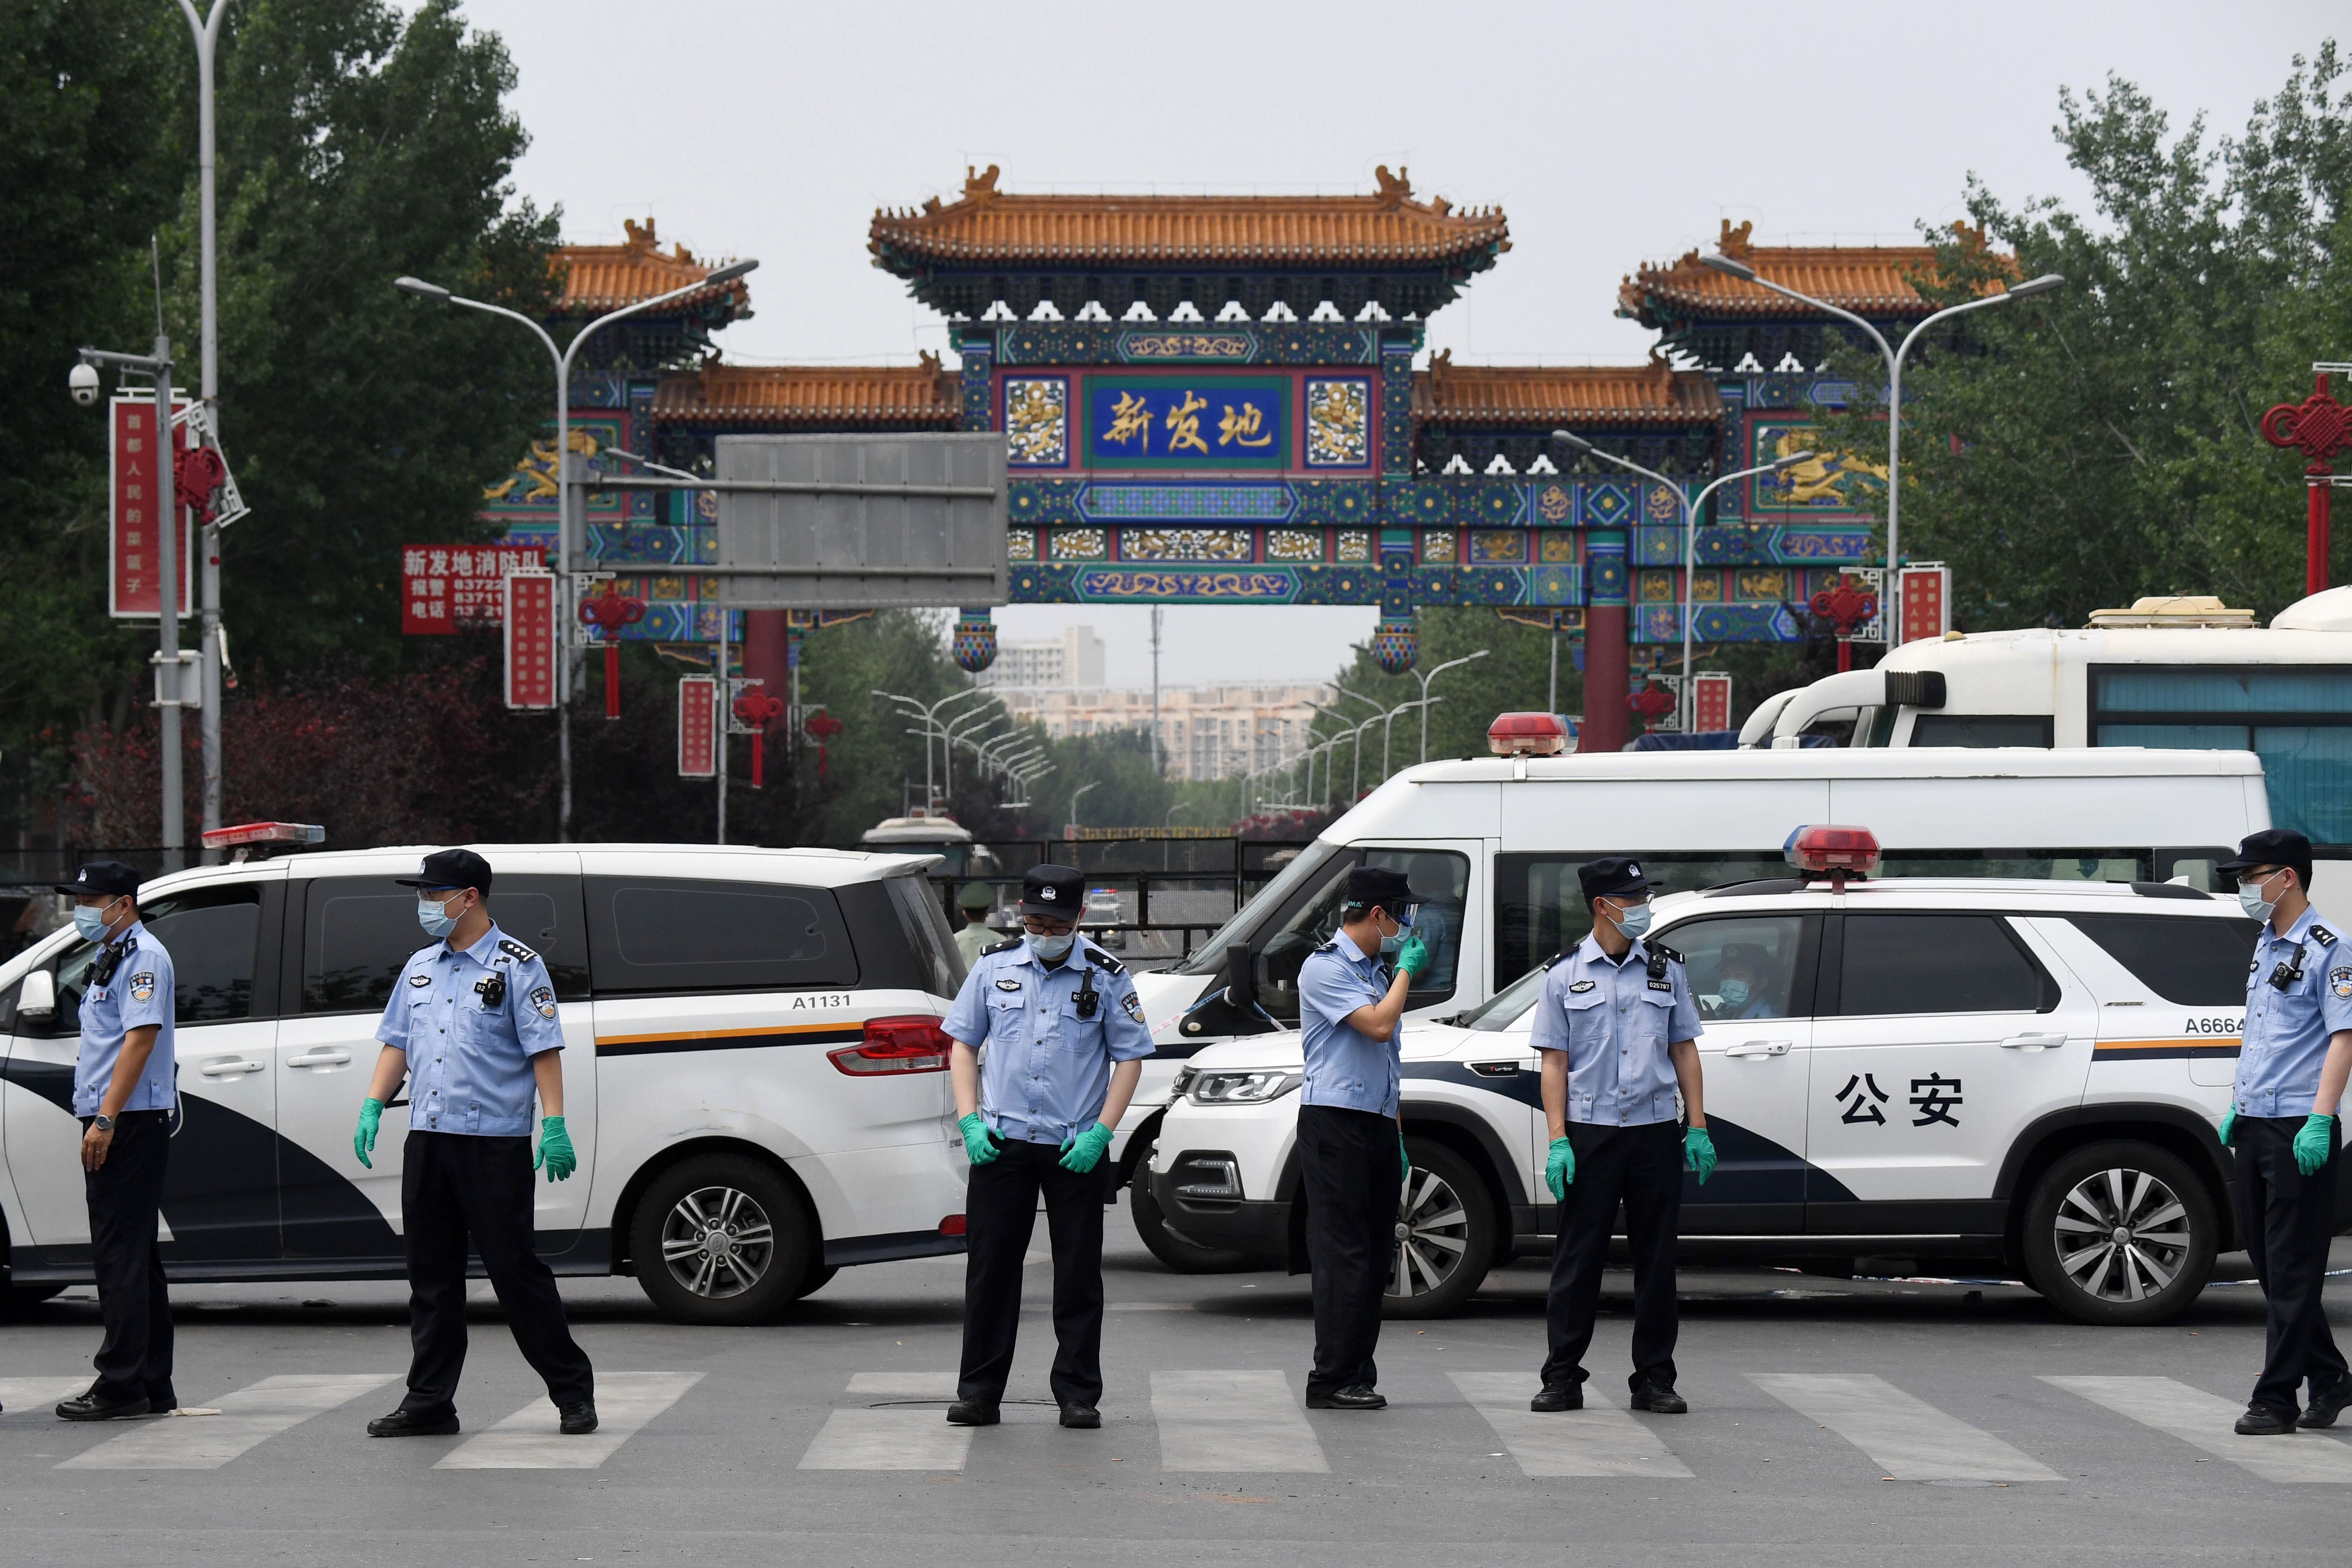 Police guard the entrance to the closed Xinfadi market in Beijing on June 13.